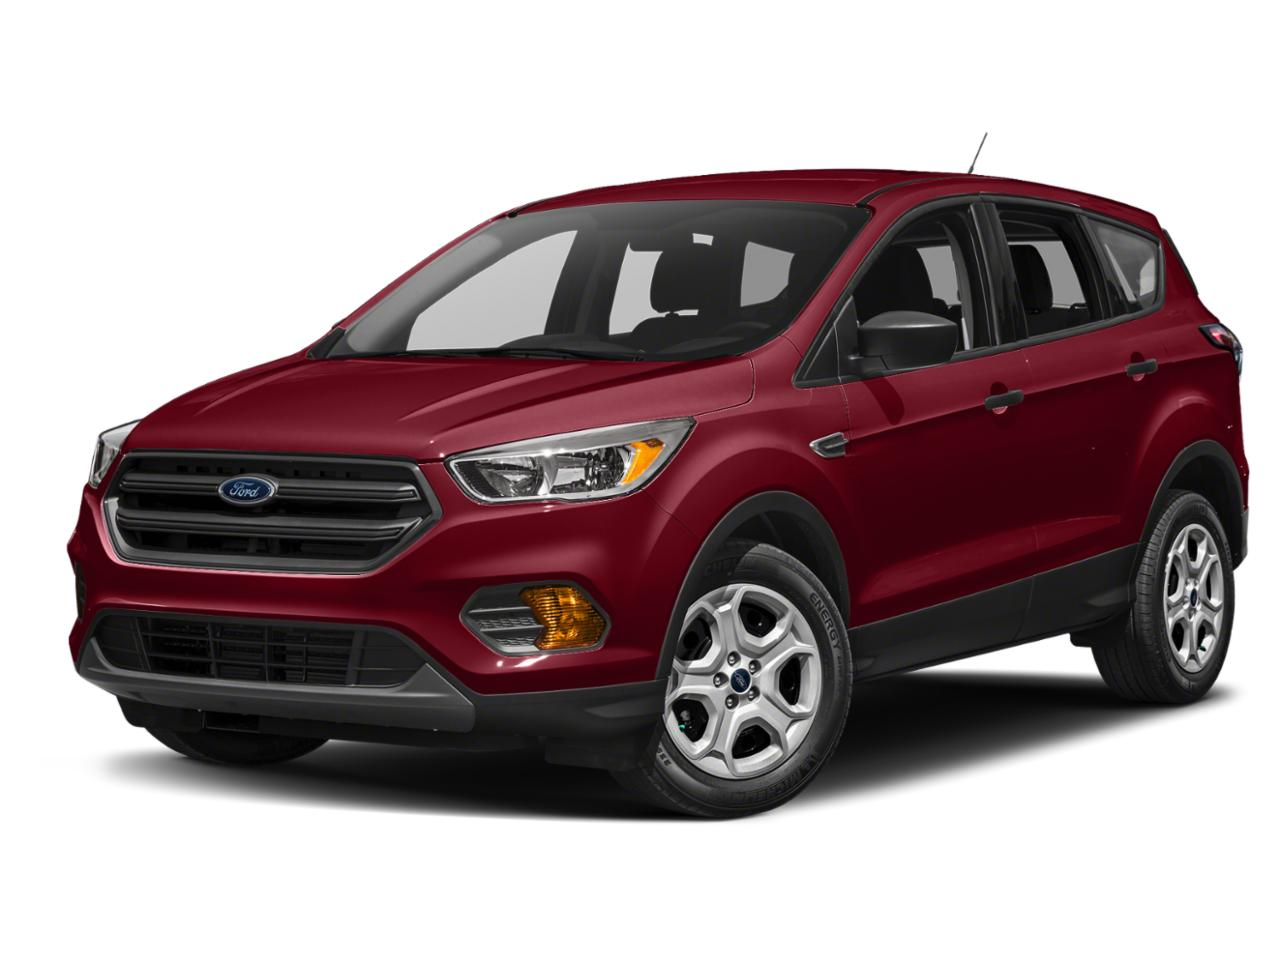 2018 Ford Escape Vehicle Photo in Bowie, MD 20716